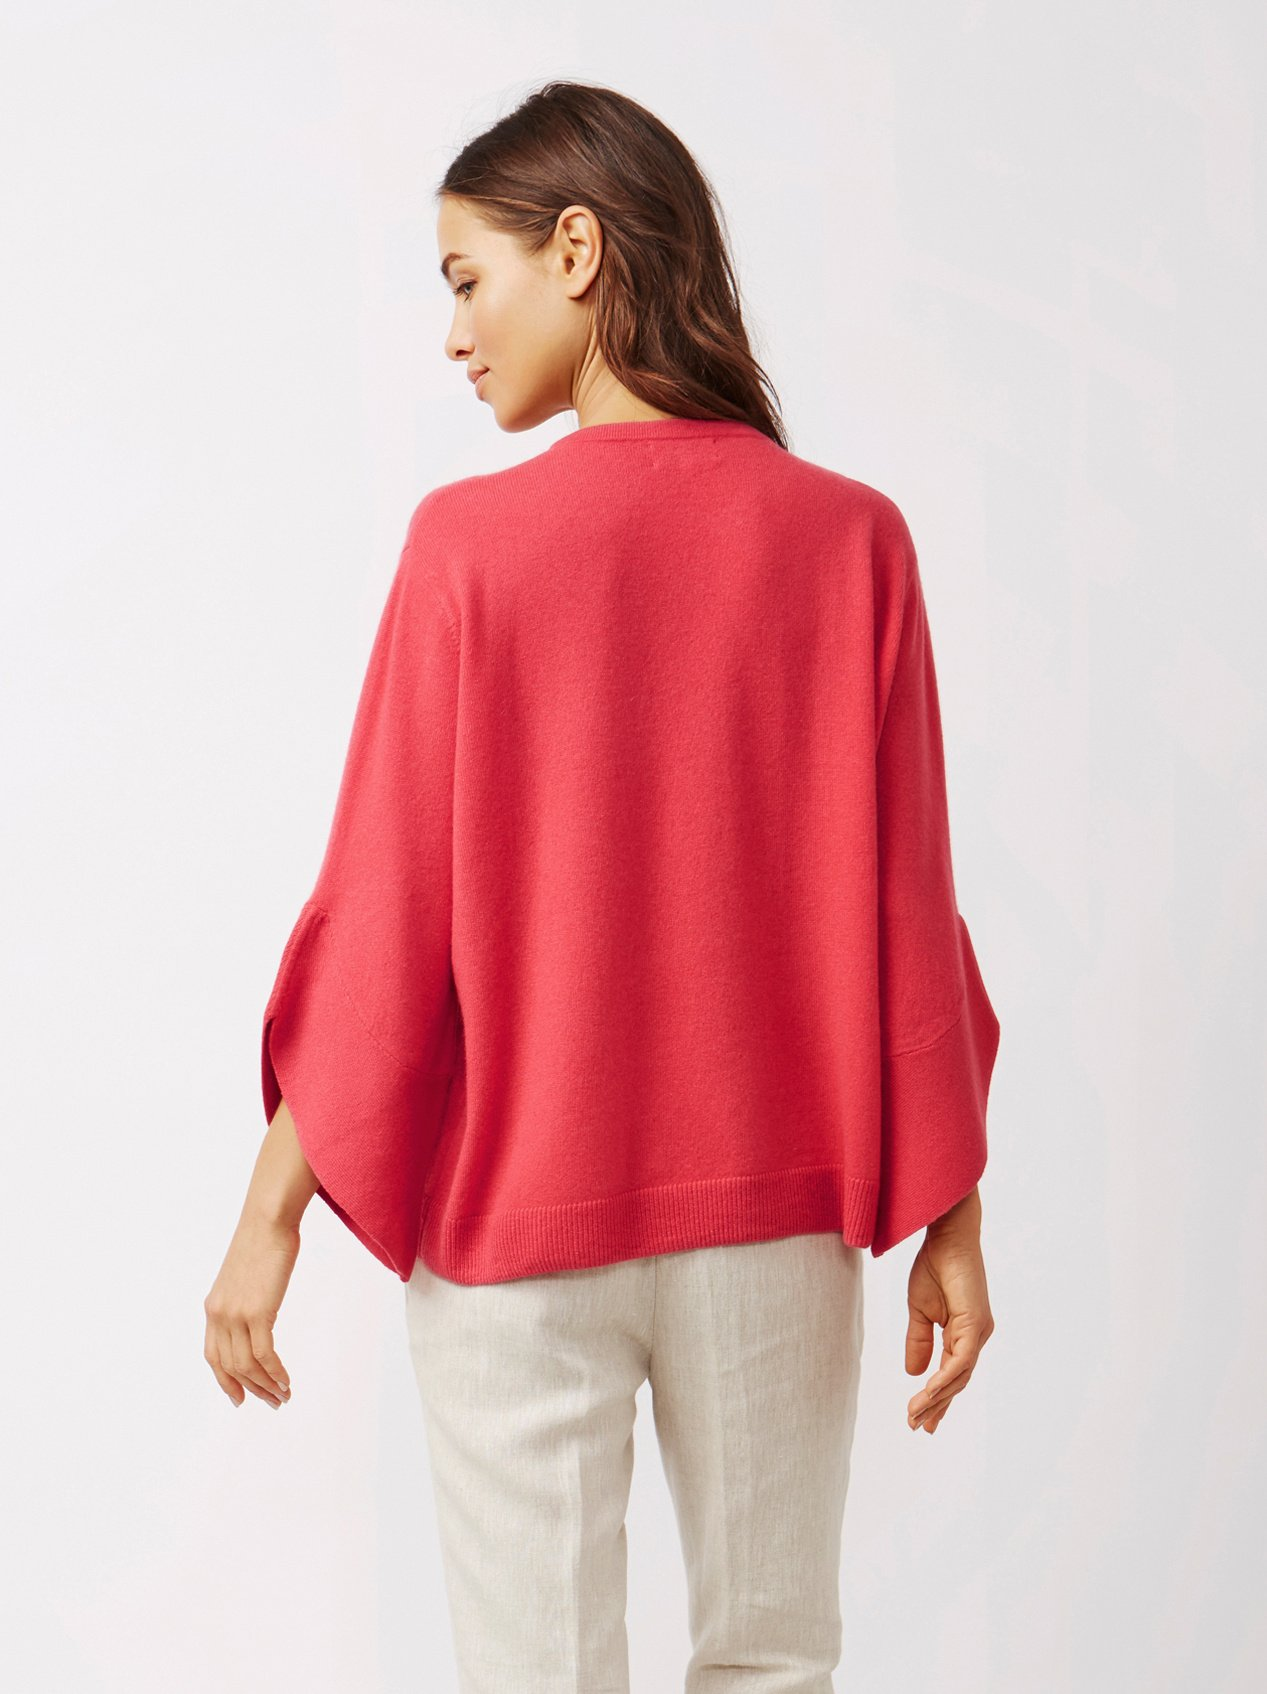 Soft Goat Women's Tulip Arm Sweater Very Berry